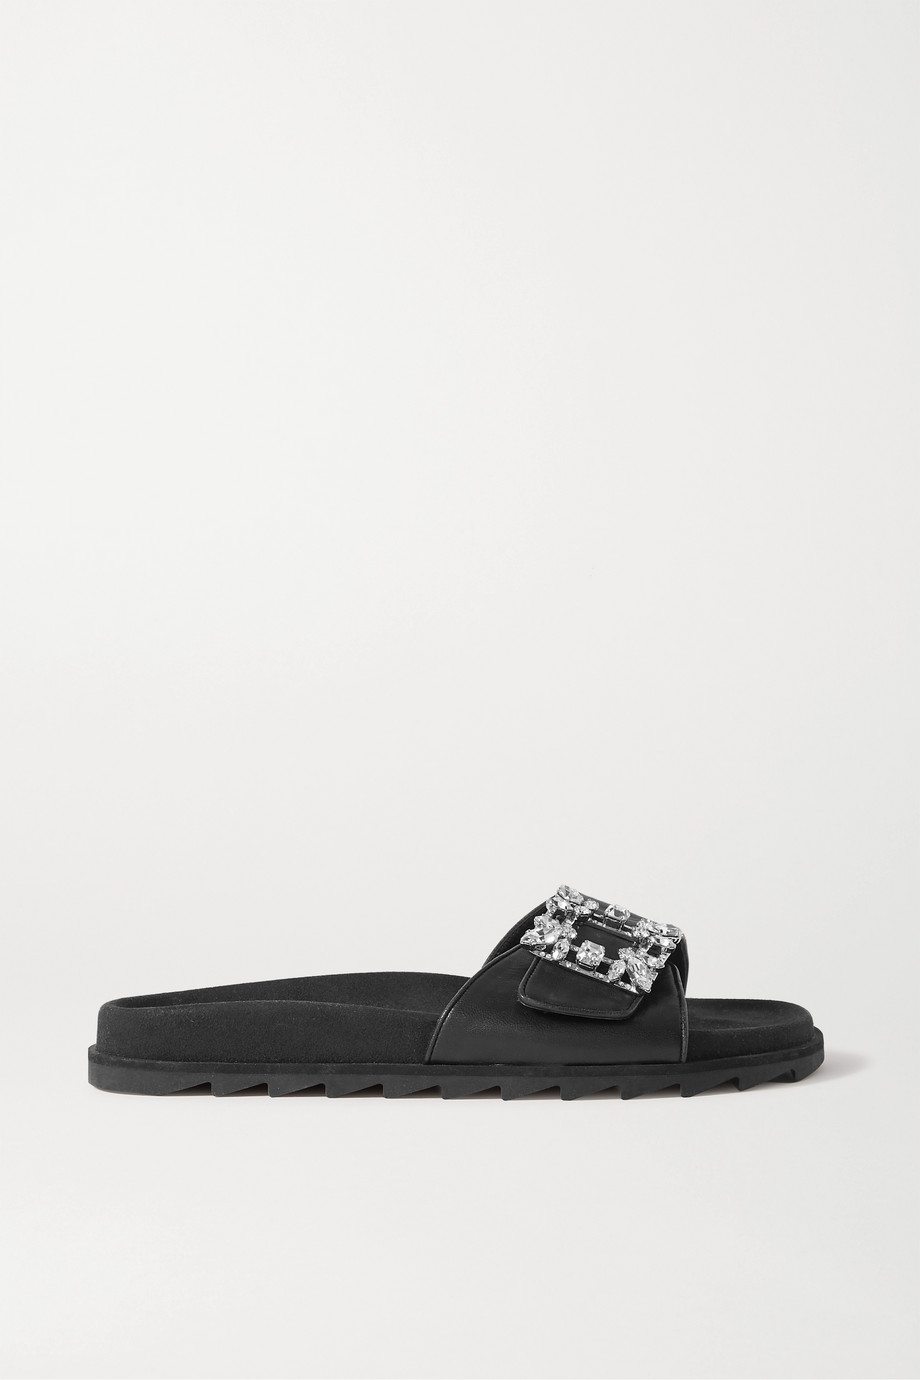 Roger Vivier Slidy crystal-embellished leather slides